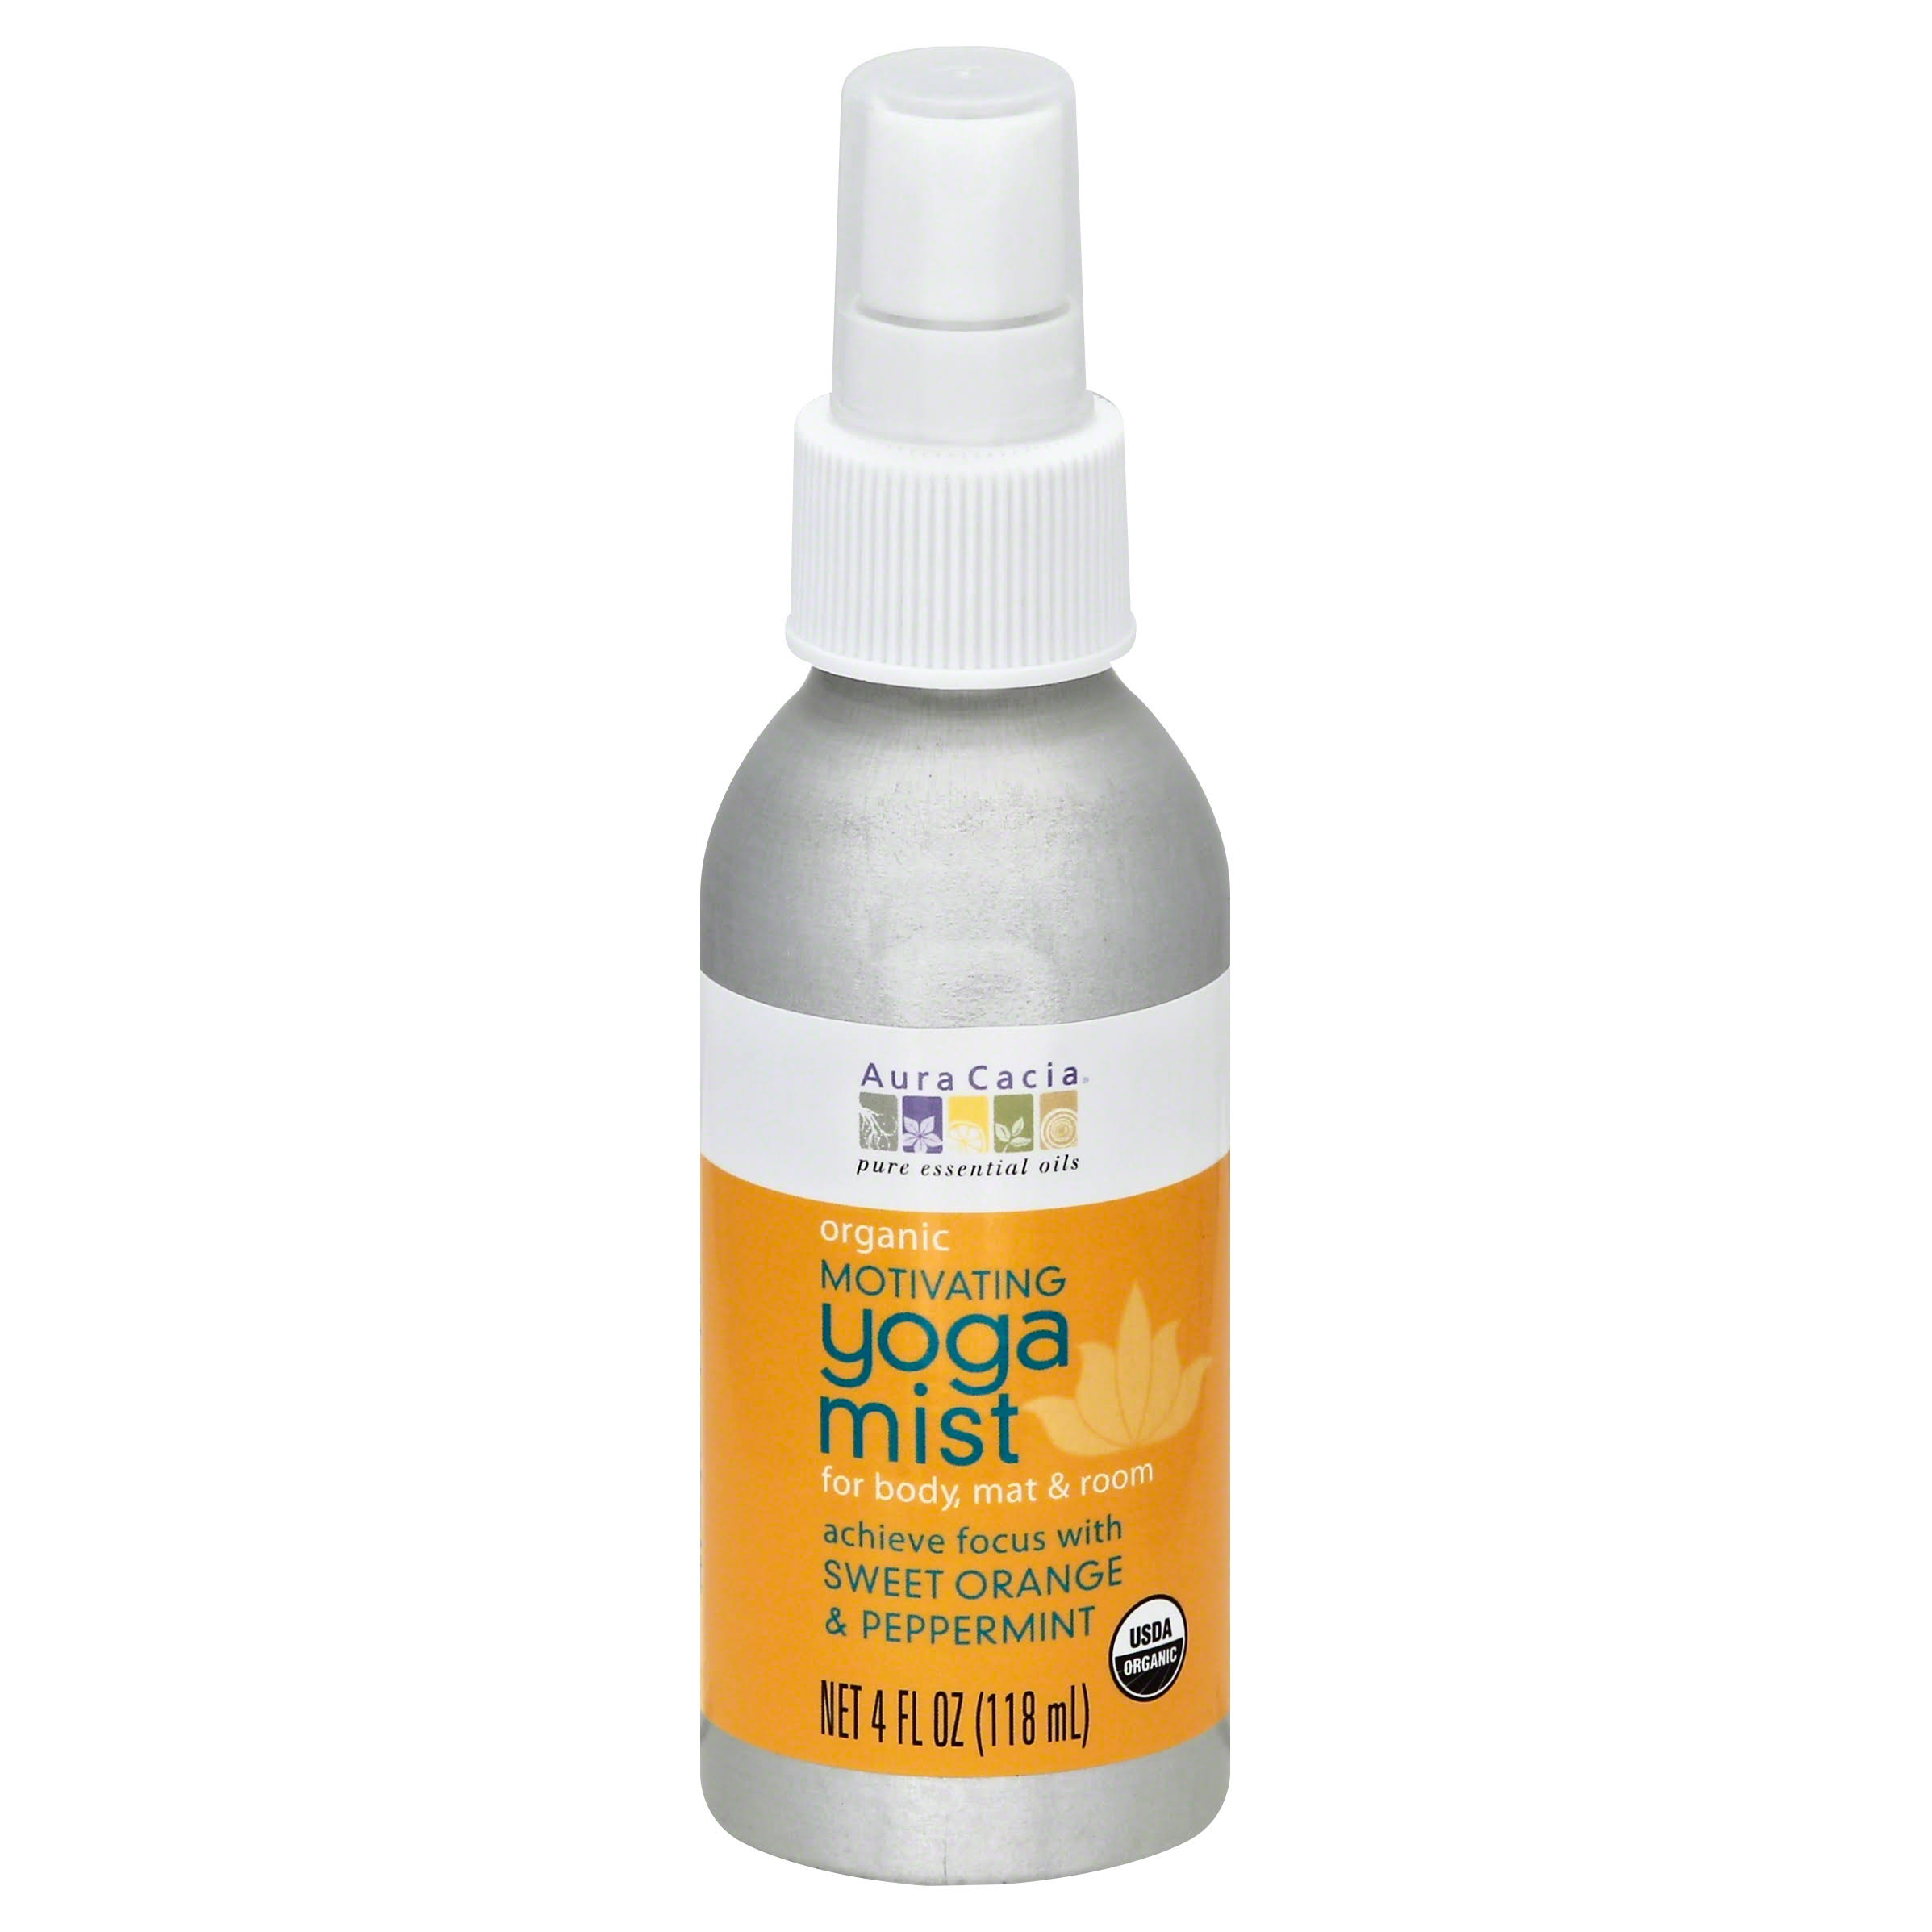 Aura Cacia Yoga Room Body and Mat Mist - Sweet Orange and Peppermint, 4oz